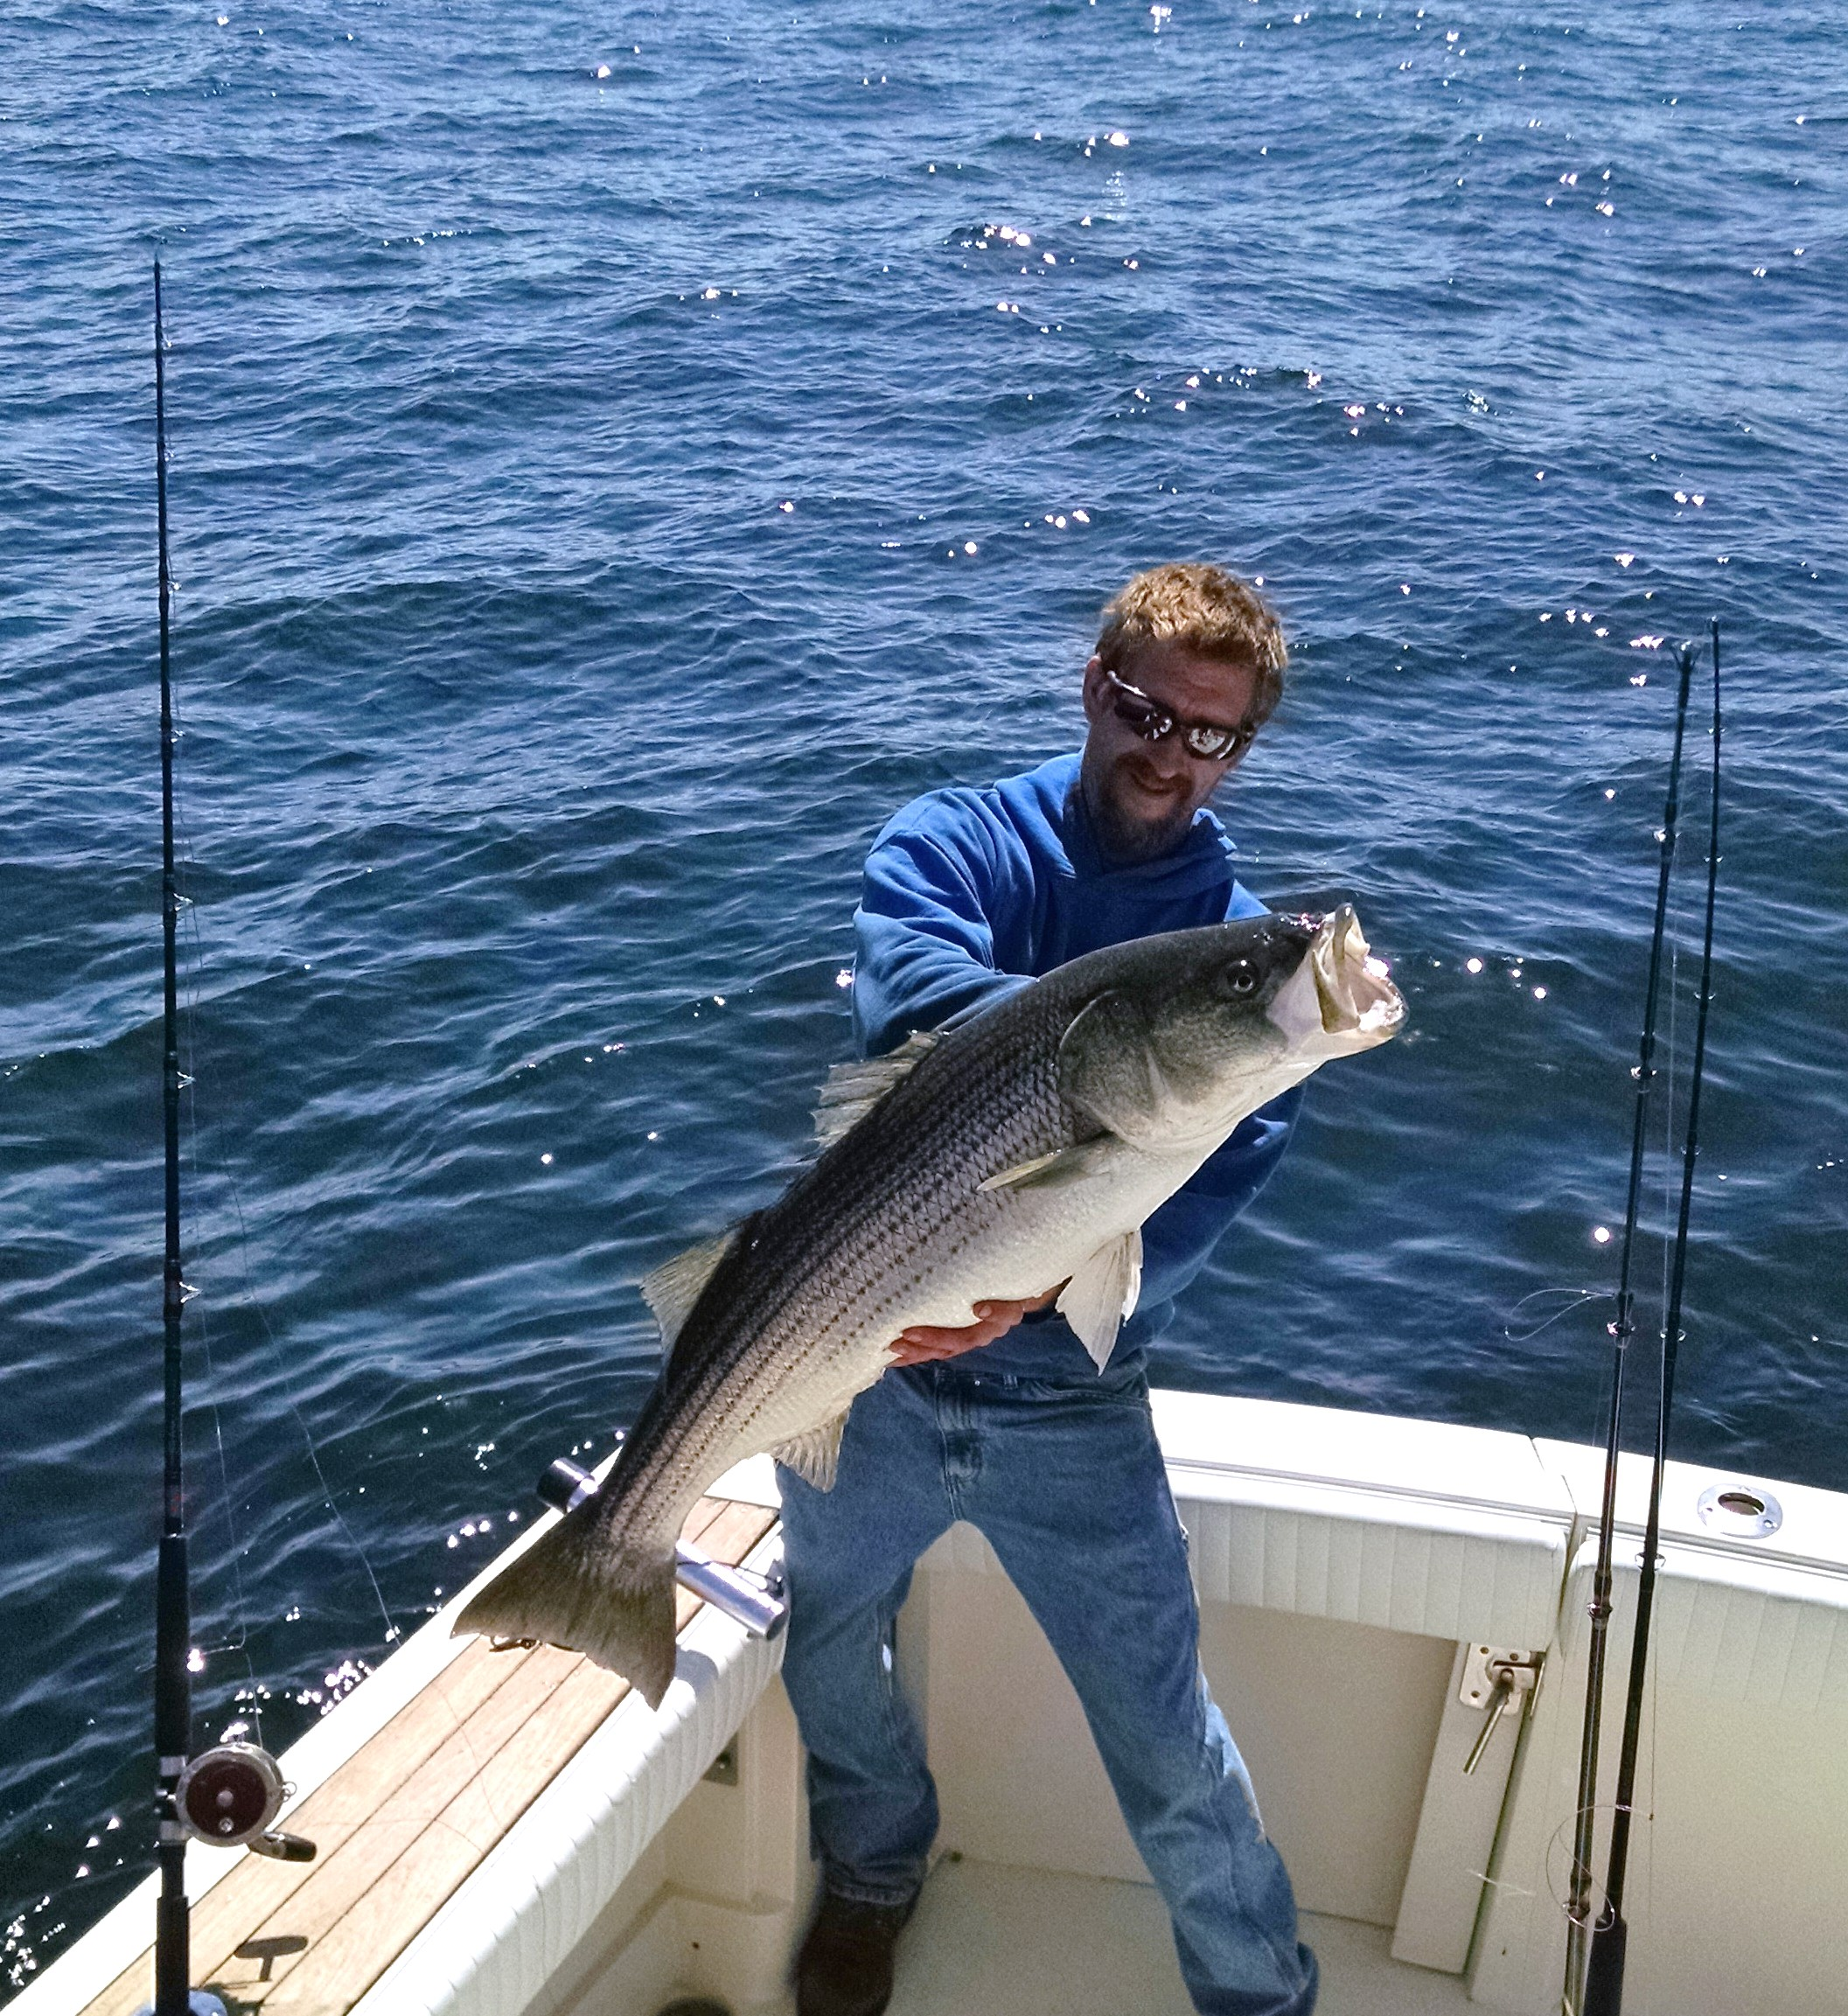 Fishing in new jersey with blue chip sportfishing charters for Fishing charters nj